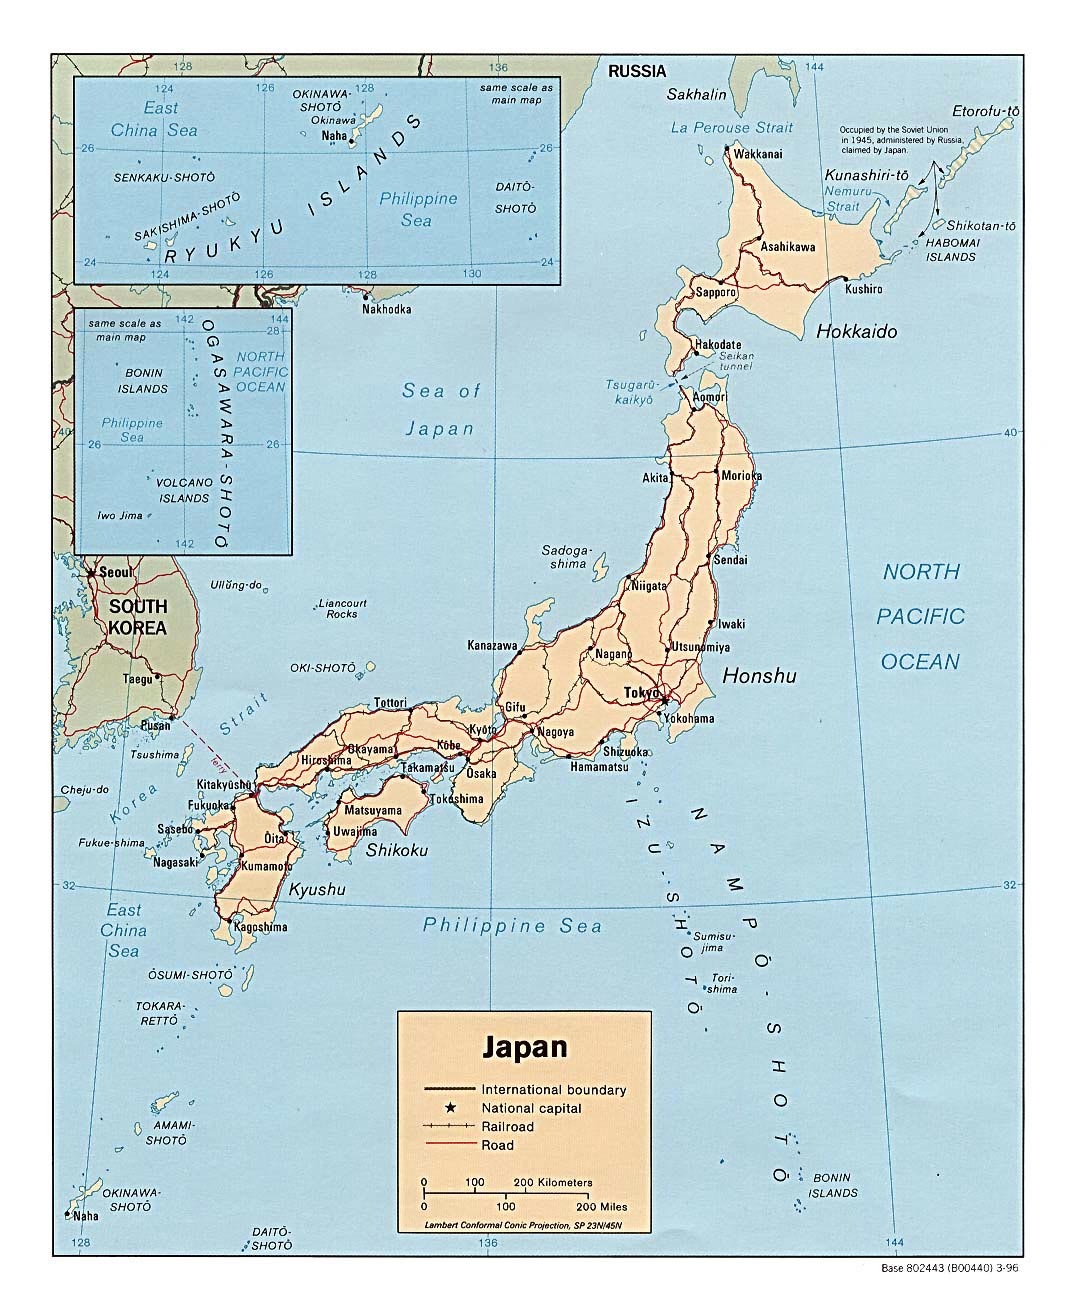 Japan Maps | Printable Maps of Japan for Download on italy map, united states map, japanese map, iraq map, india map, france map, australia map, saudi arabia map, far east map, united kingdom map, germany map, brazil map, russia map, africa map, america map, california map, korea map, canada map, europe map,